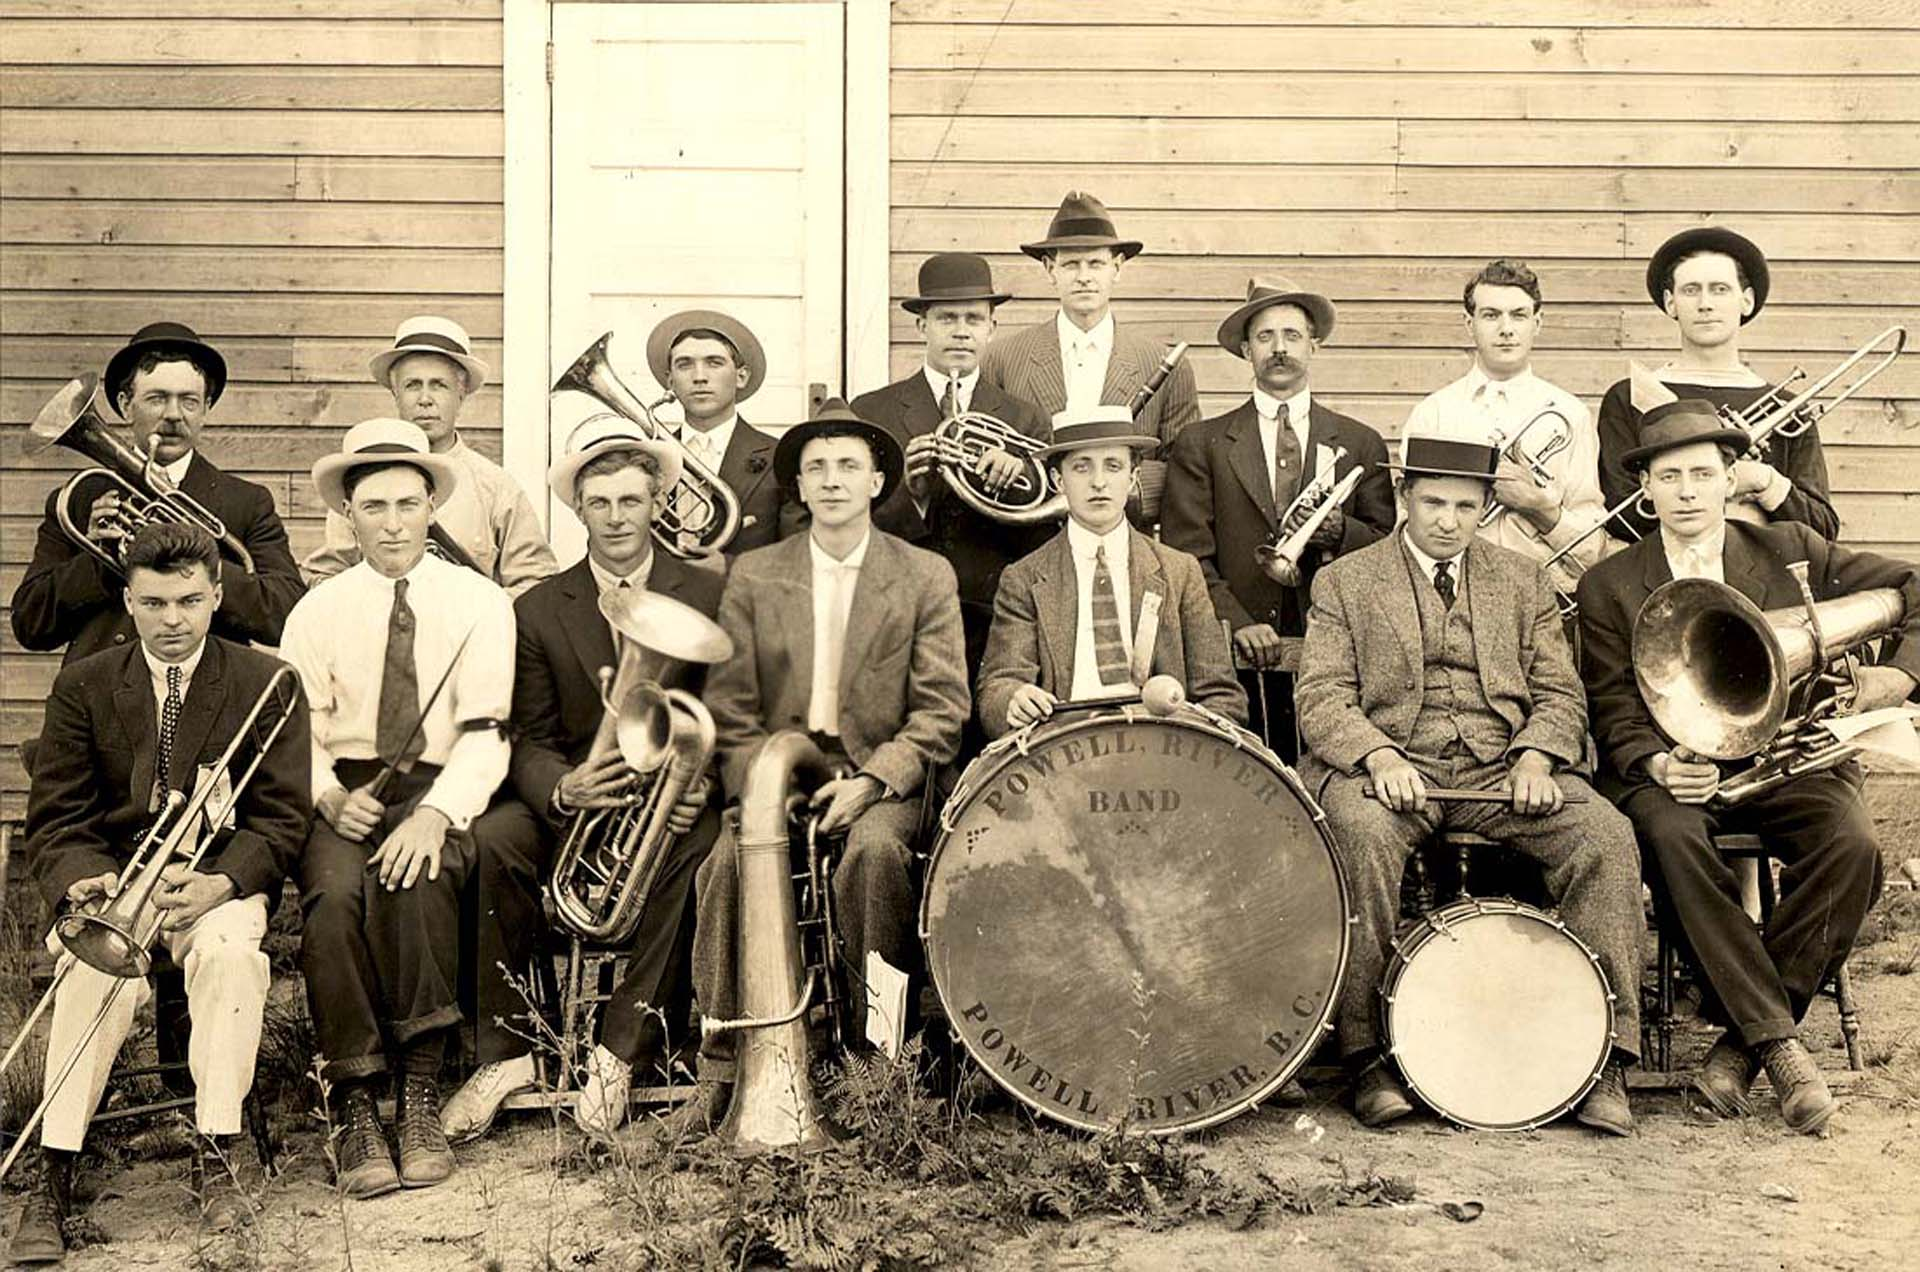 The Powell River Band 1914.